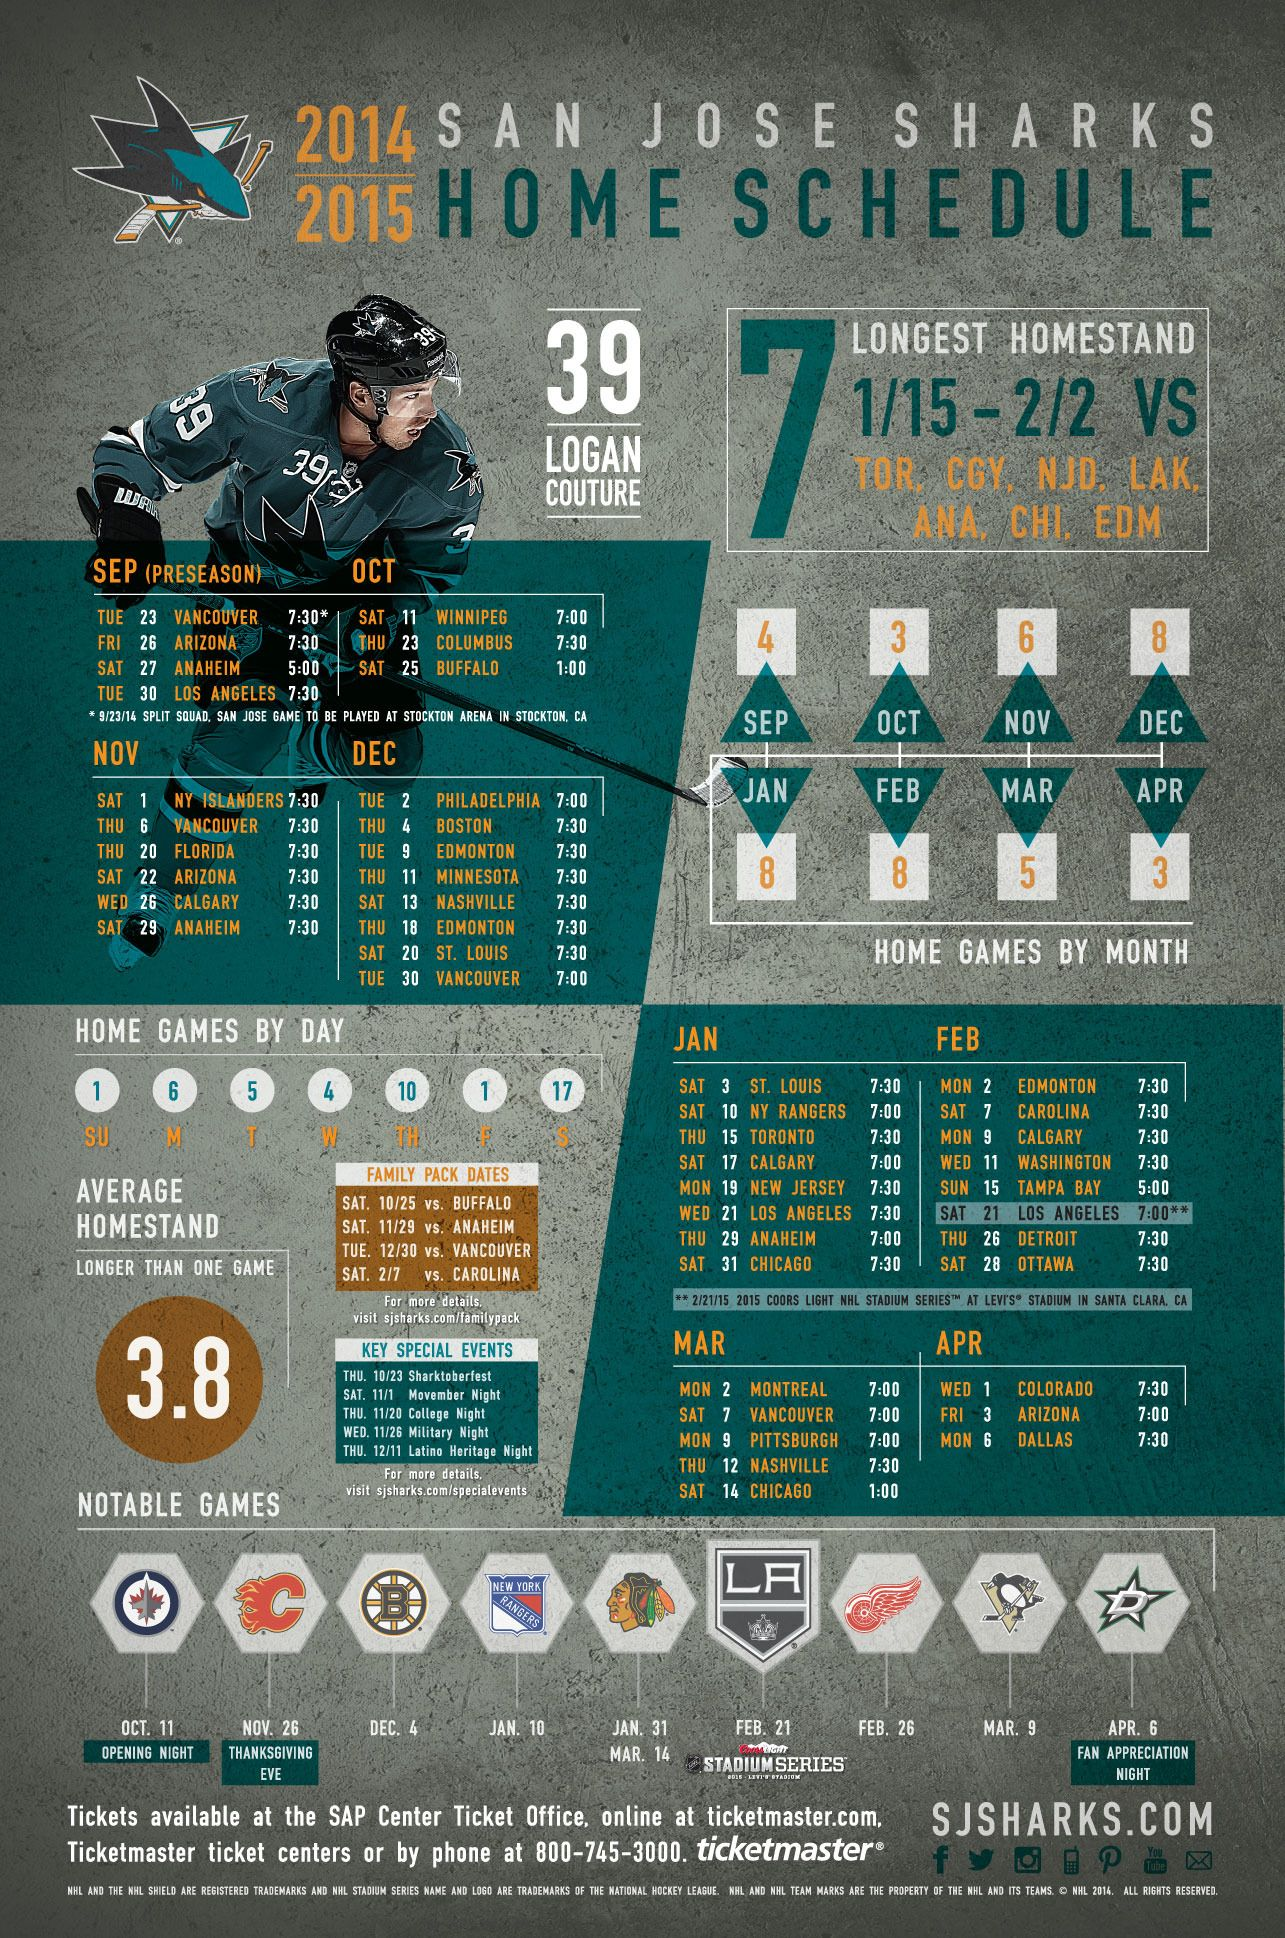 2014-15 sharks home schedule infographic | sj sharks | pinterest